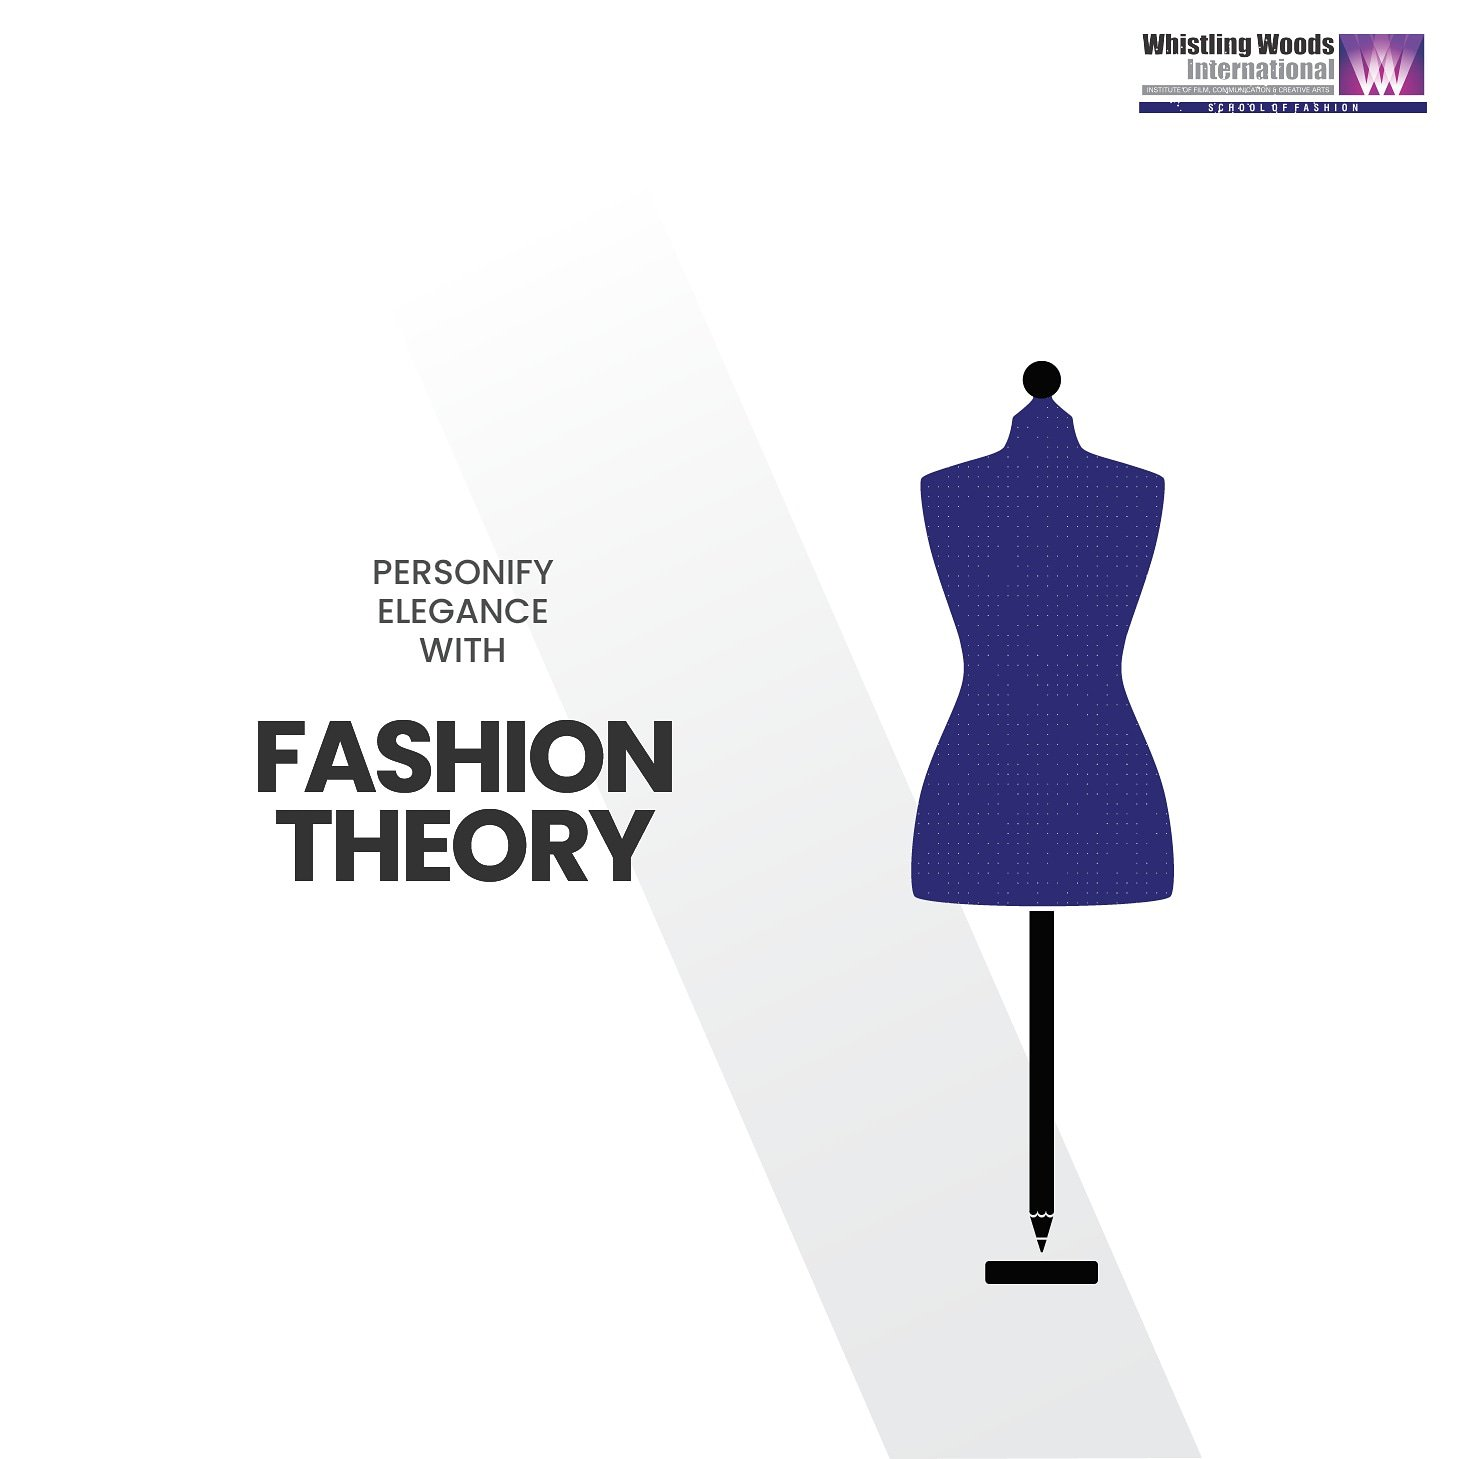 Whistling Woods International On Twitter Experience The Multi Disciplinary Approach Of Designing Beyond Apparels With A Detailed Understanding Of Fabric Analysis Principles Of Design Fashion Illustration And Pattern Making With A Ba In Fashion